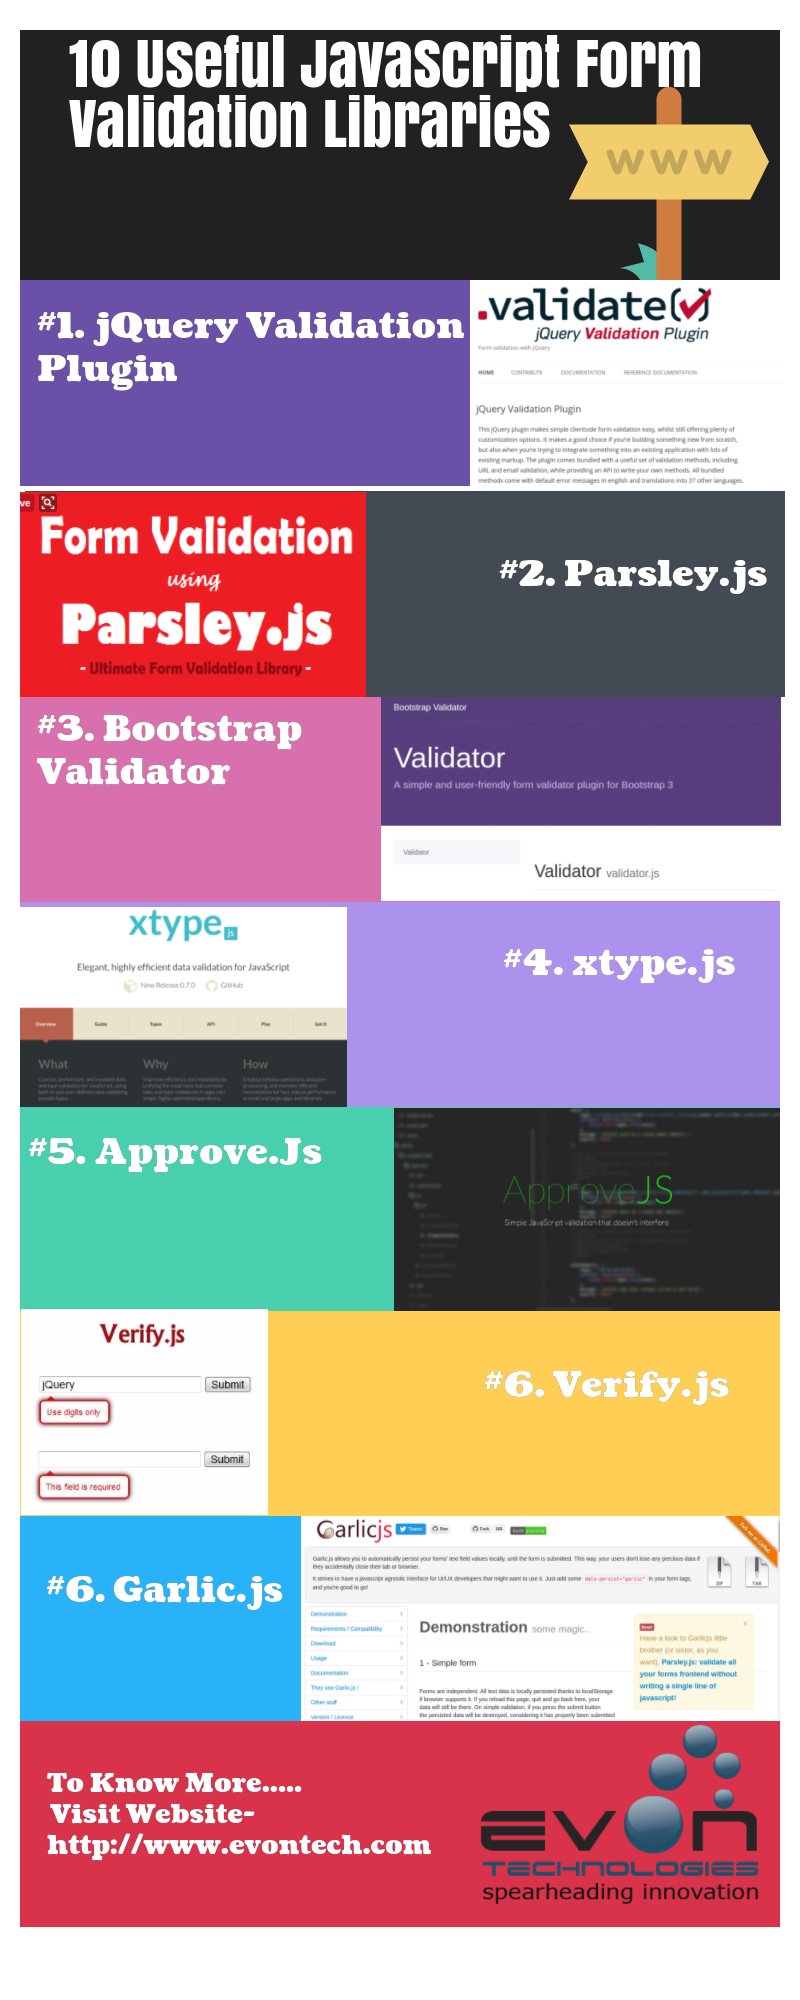 10 Useful JavaScript Form Validation Libraries